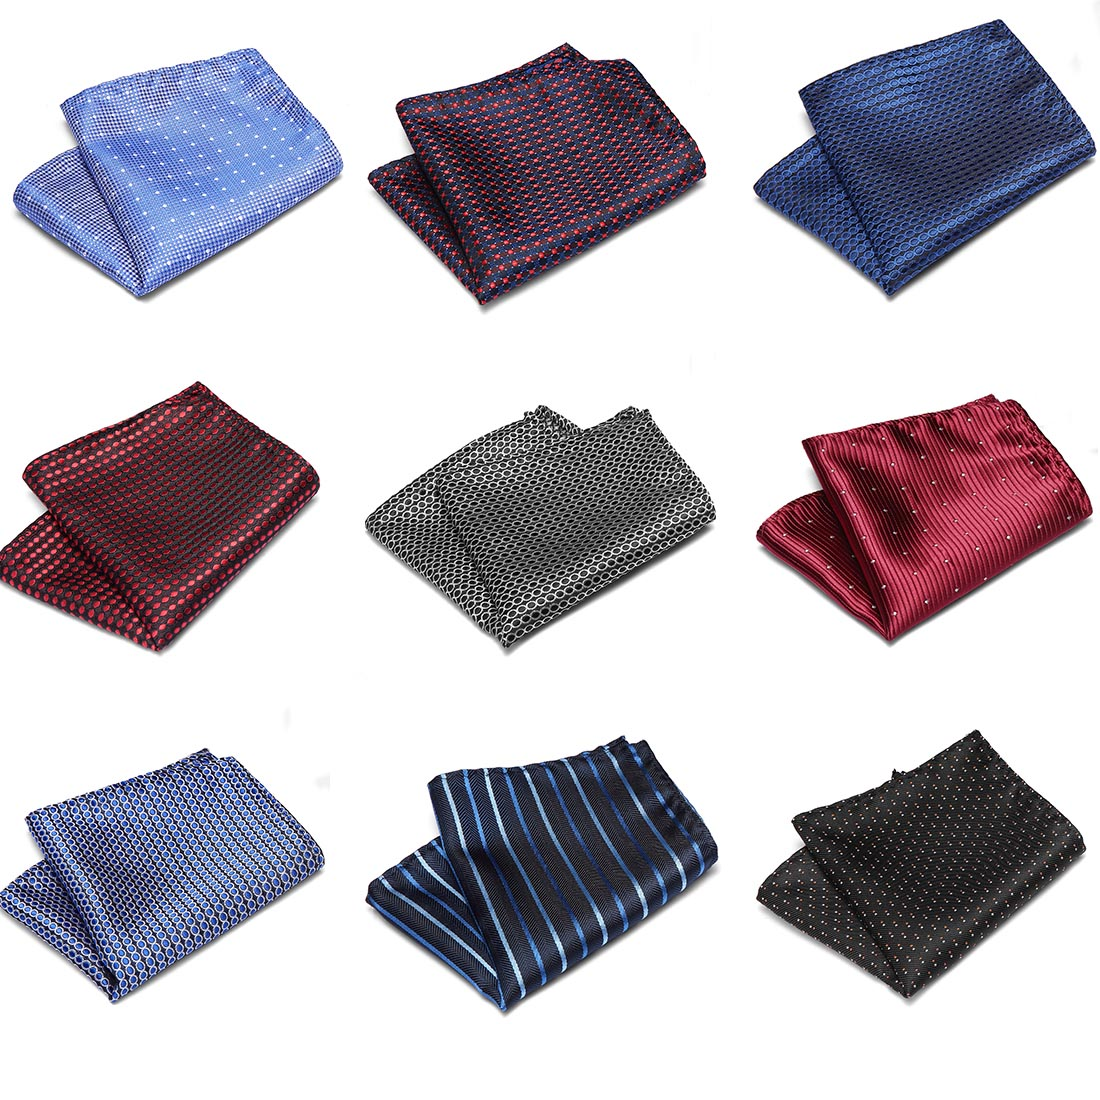 Scarves Vintage 11 Colors Cotton Hankies Men Pocket Square Handkerchiefs 24*24cm